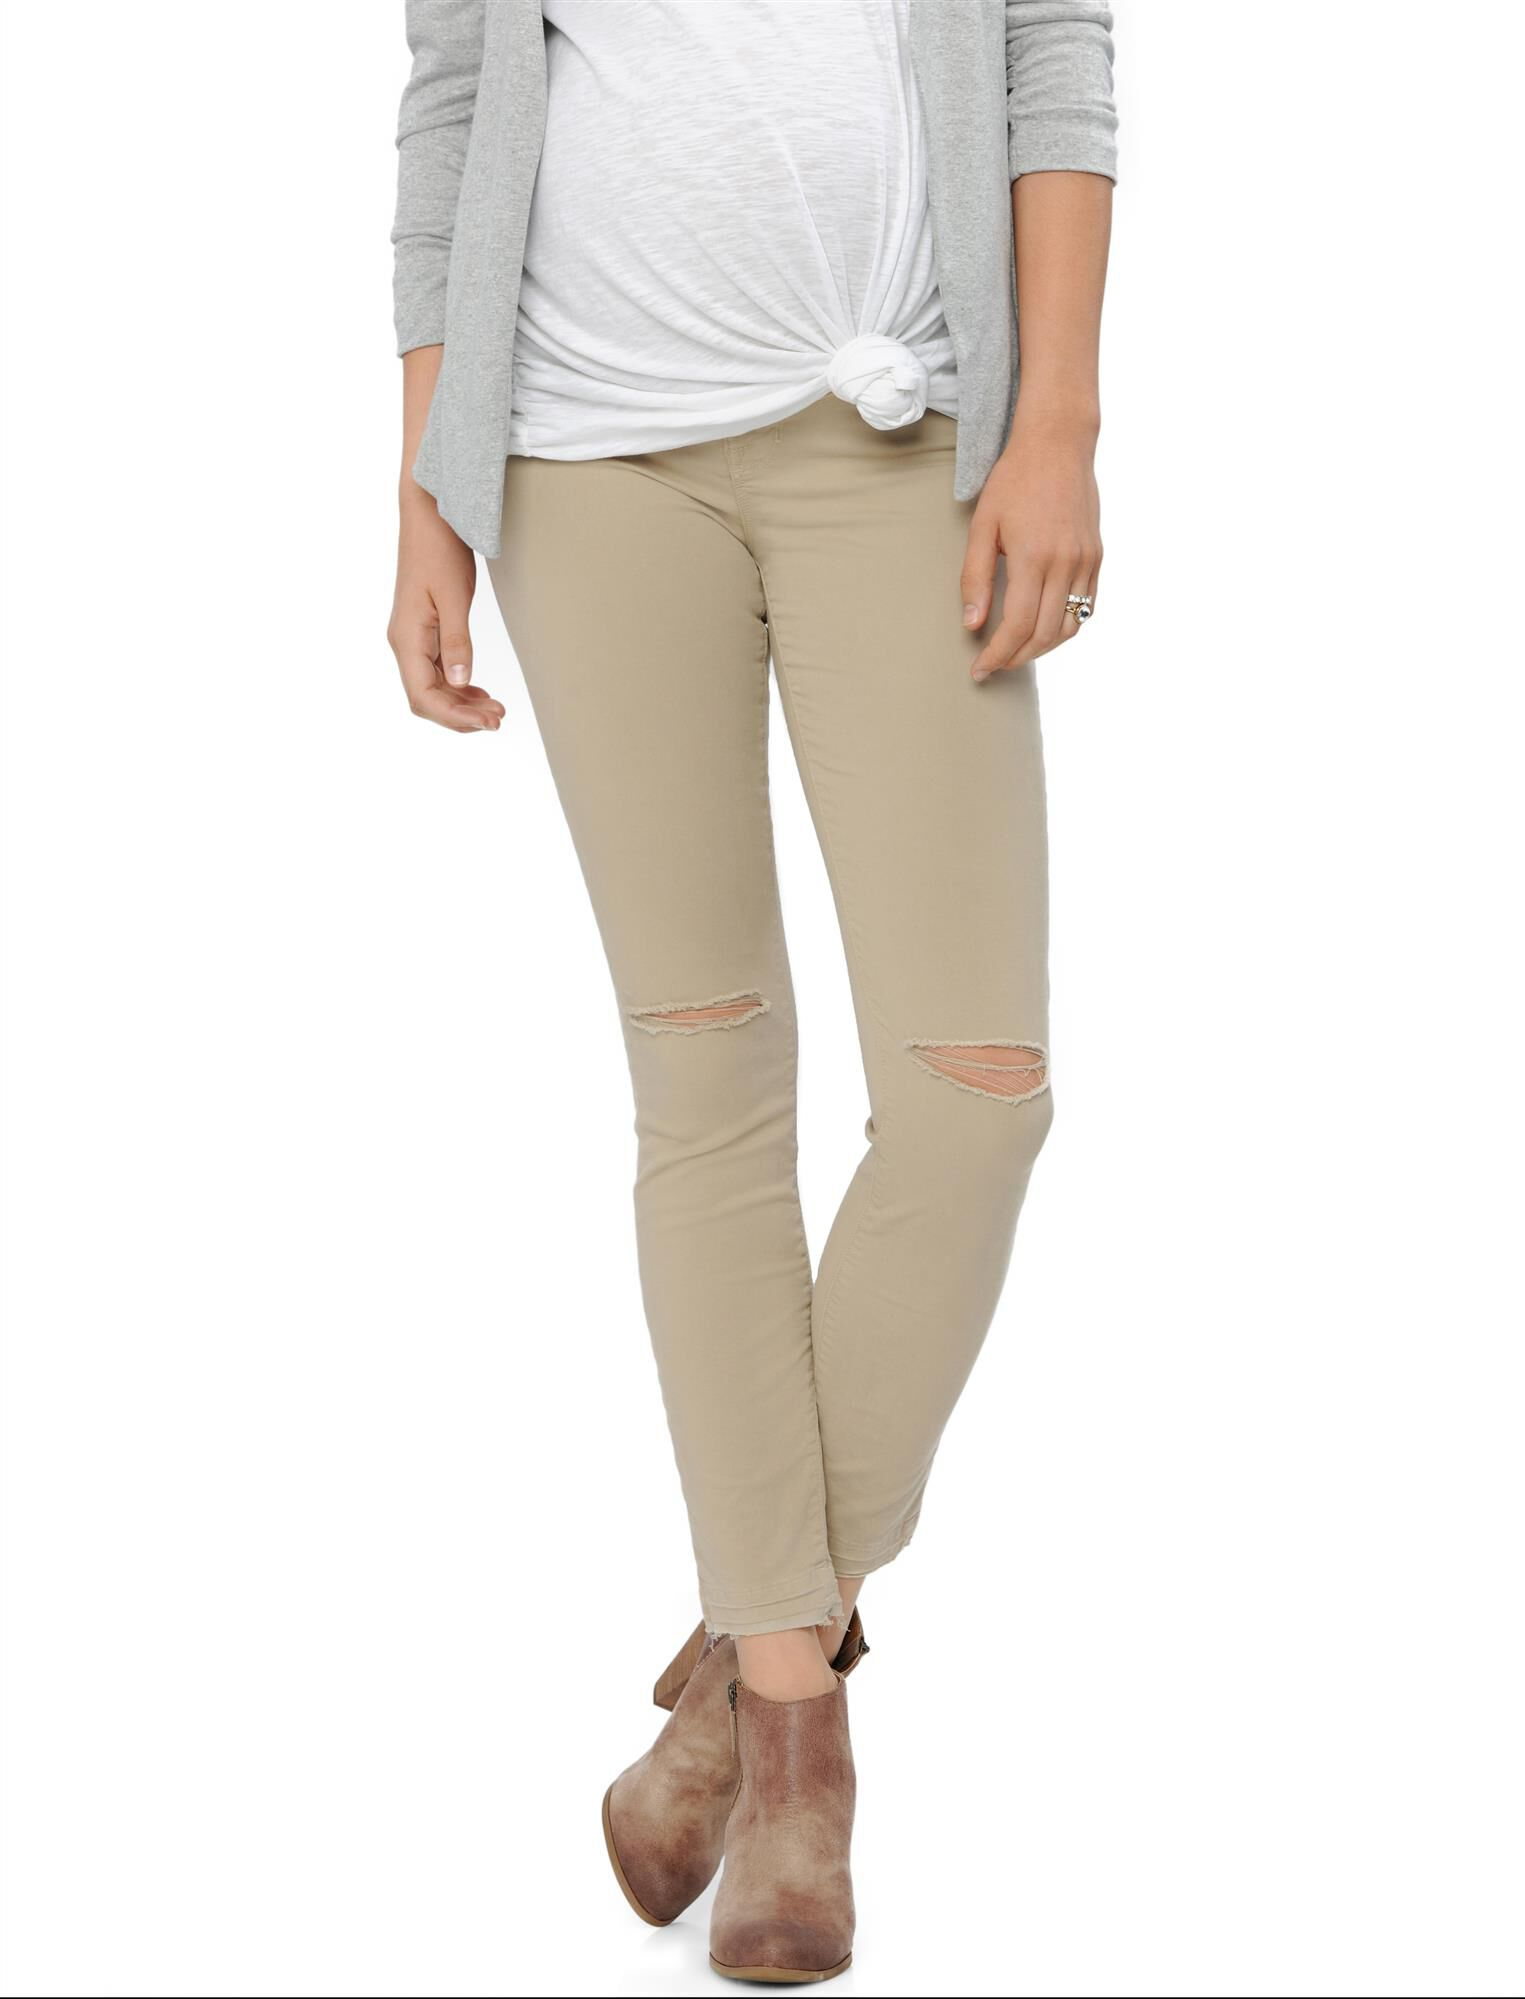 J Brand Secret Fit Belly Skinny Leg Maternity Jeans